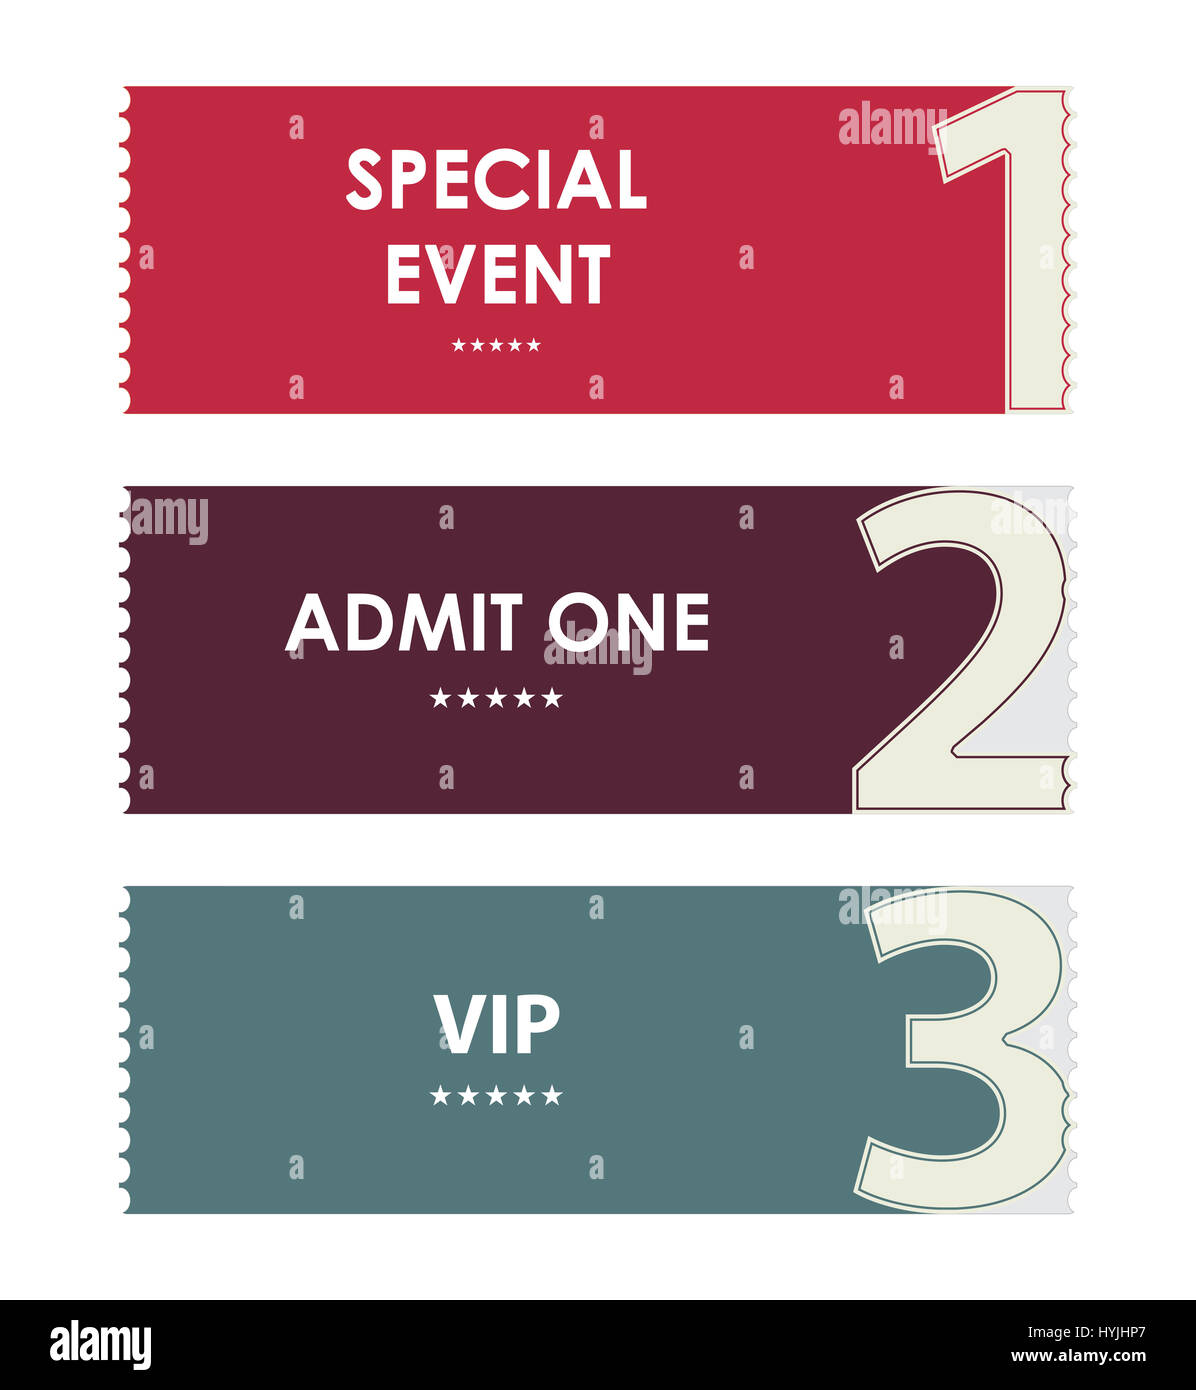 Special Modern Ticket Template Event Ticket Admit One Stock Photo - Admit one ticket template